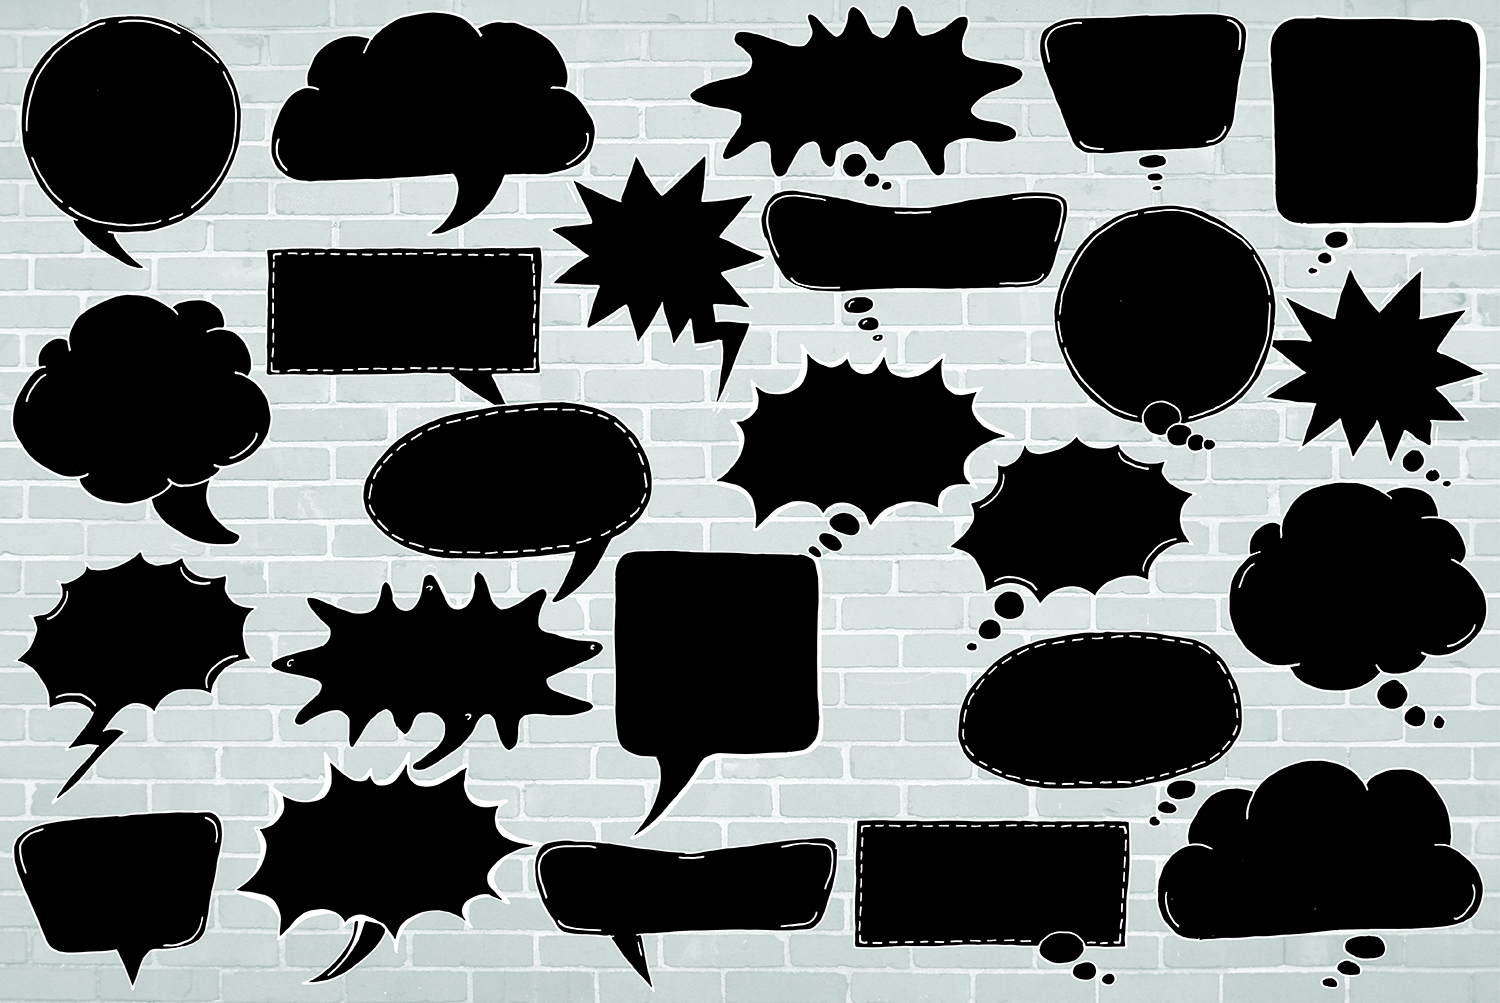 24 Hand Drawn Black and White Speech Bubbles Doodle Clipart example image 2